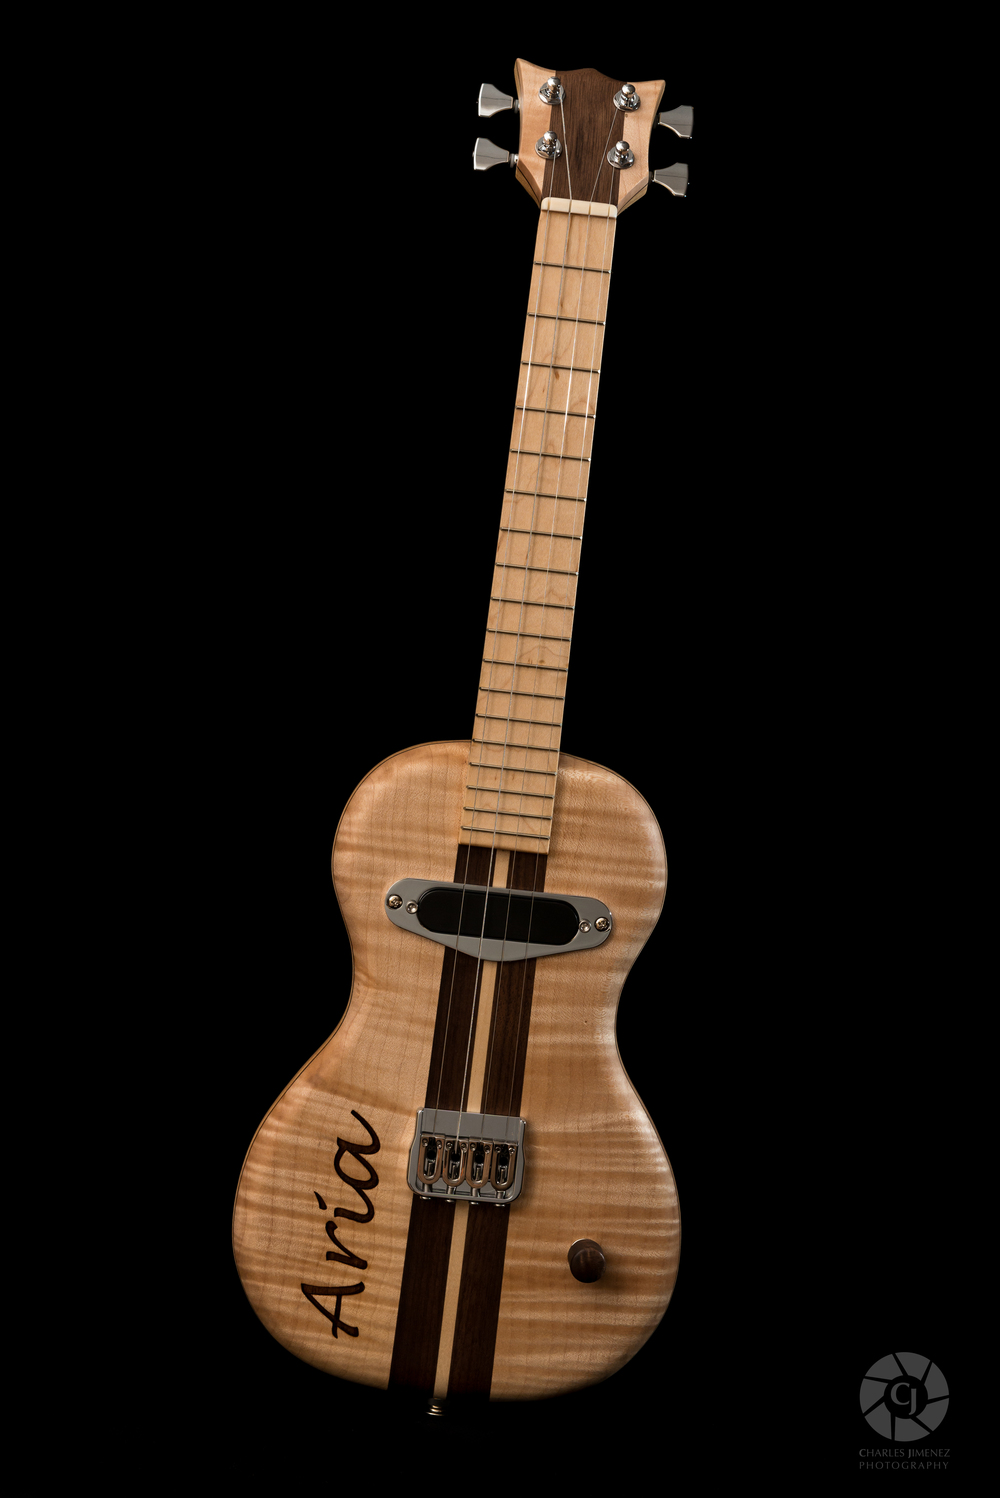 Better Mousetrap Guitars_Aria Ukulele_8-25-13_10.jpg